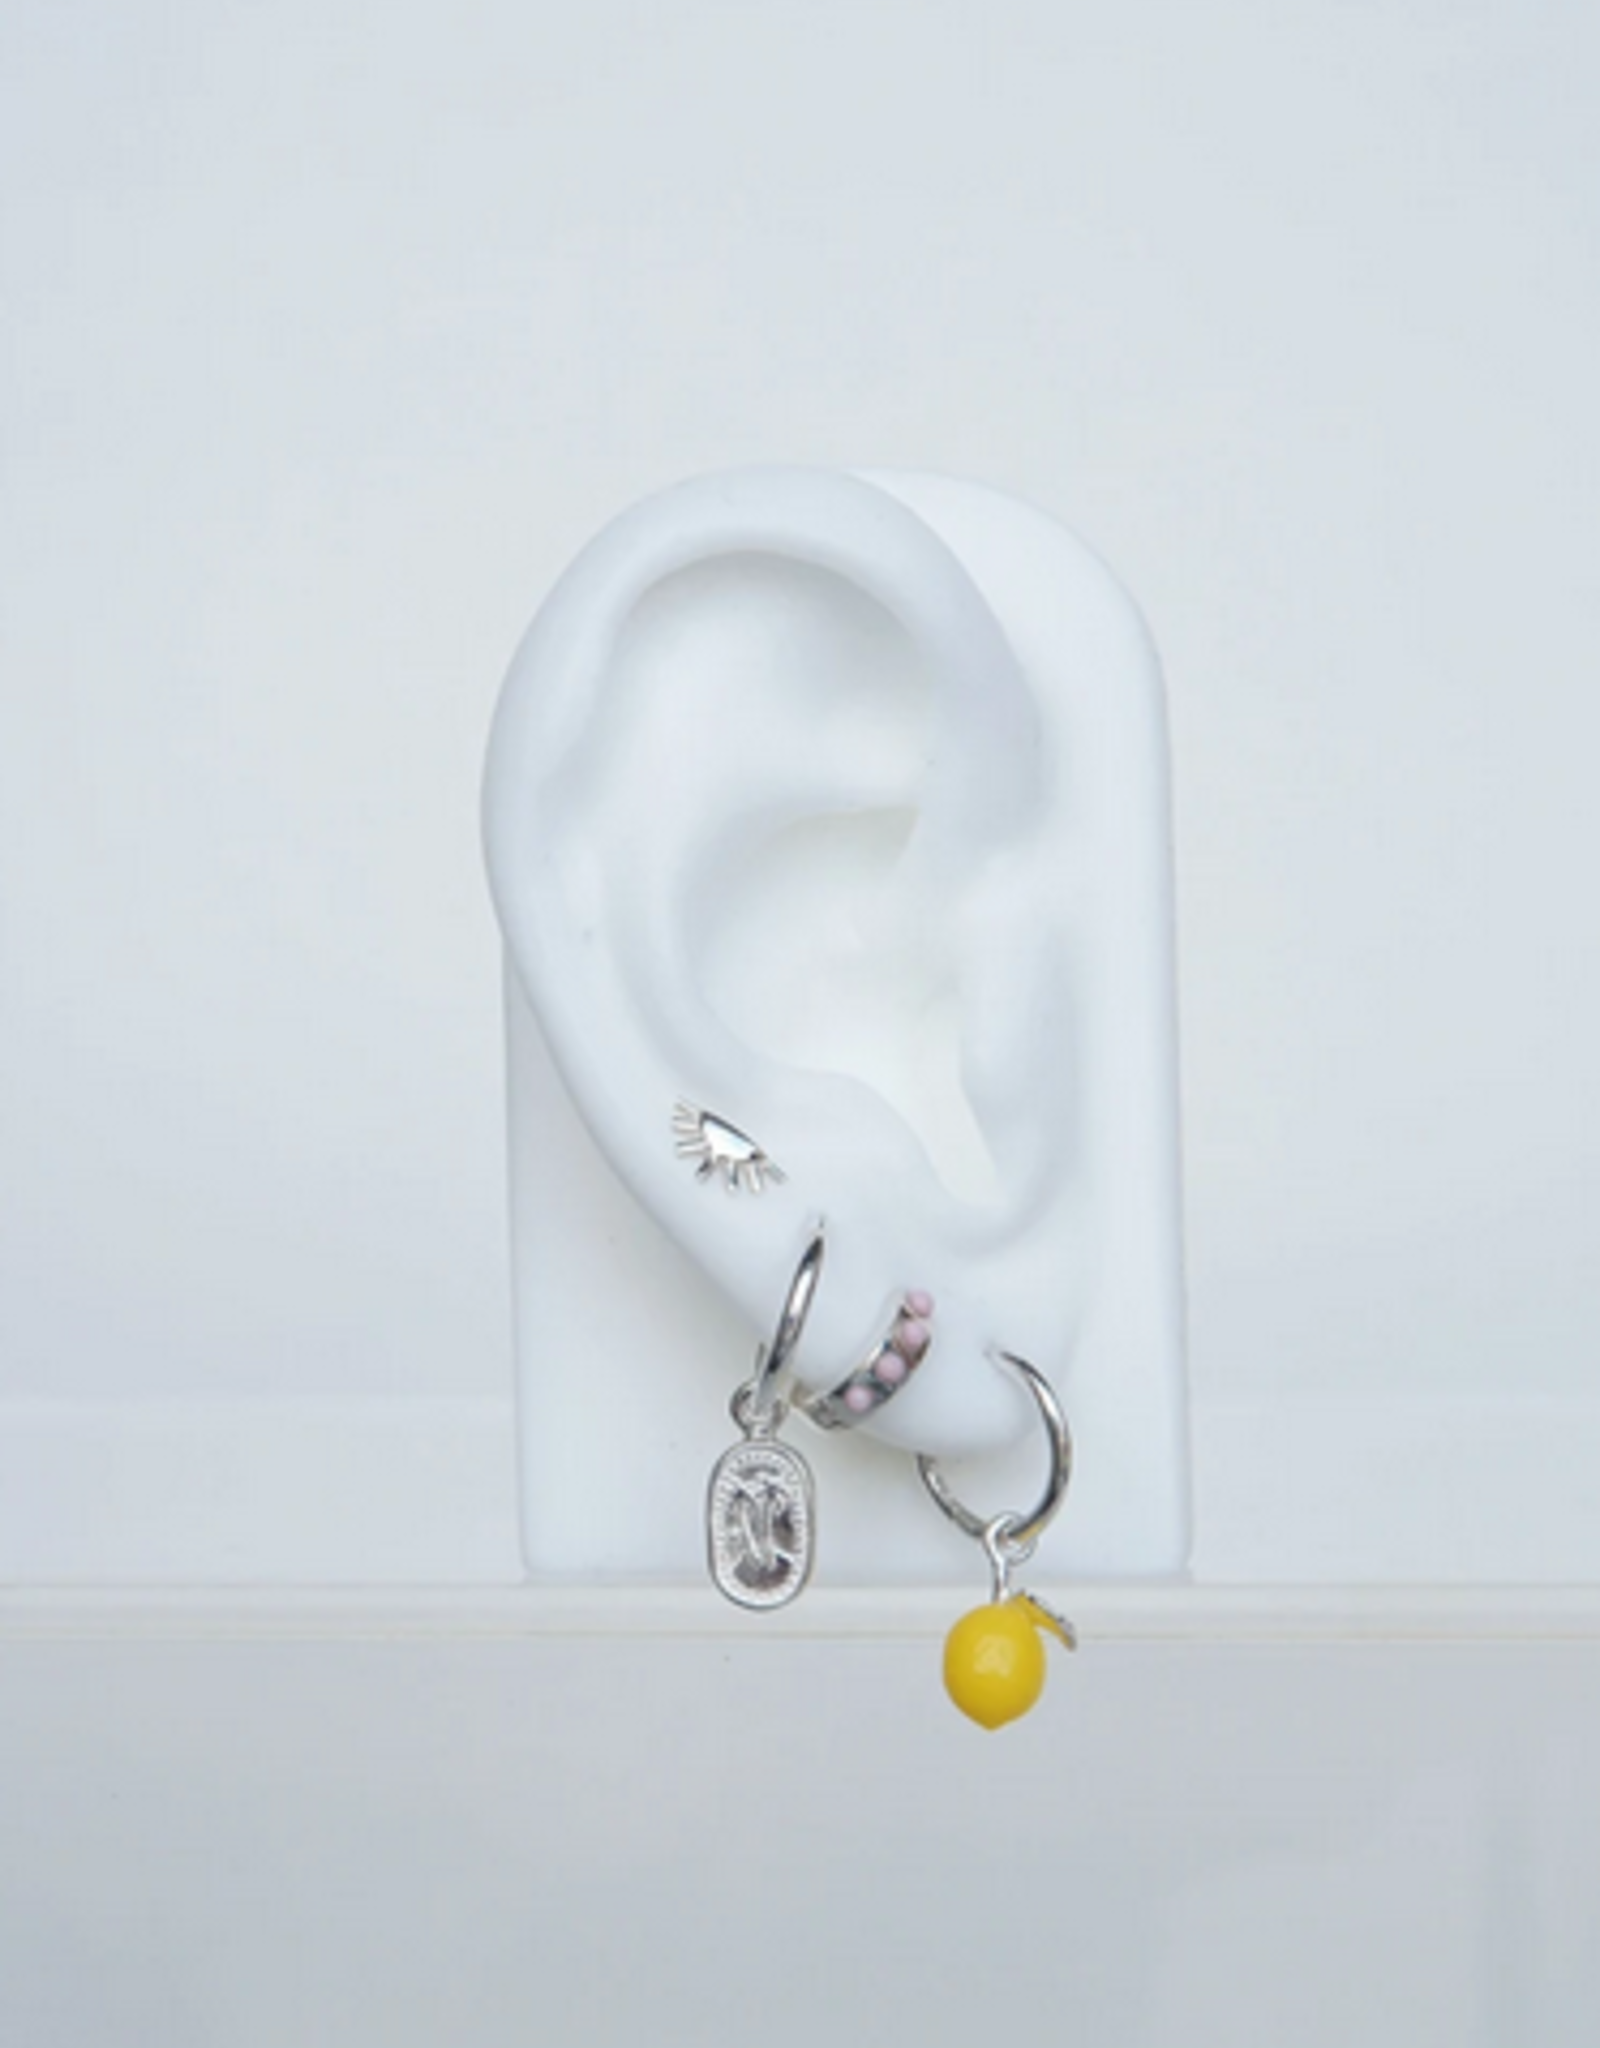 Wildthings Collectables Lemon earring silver